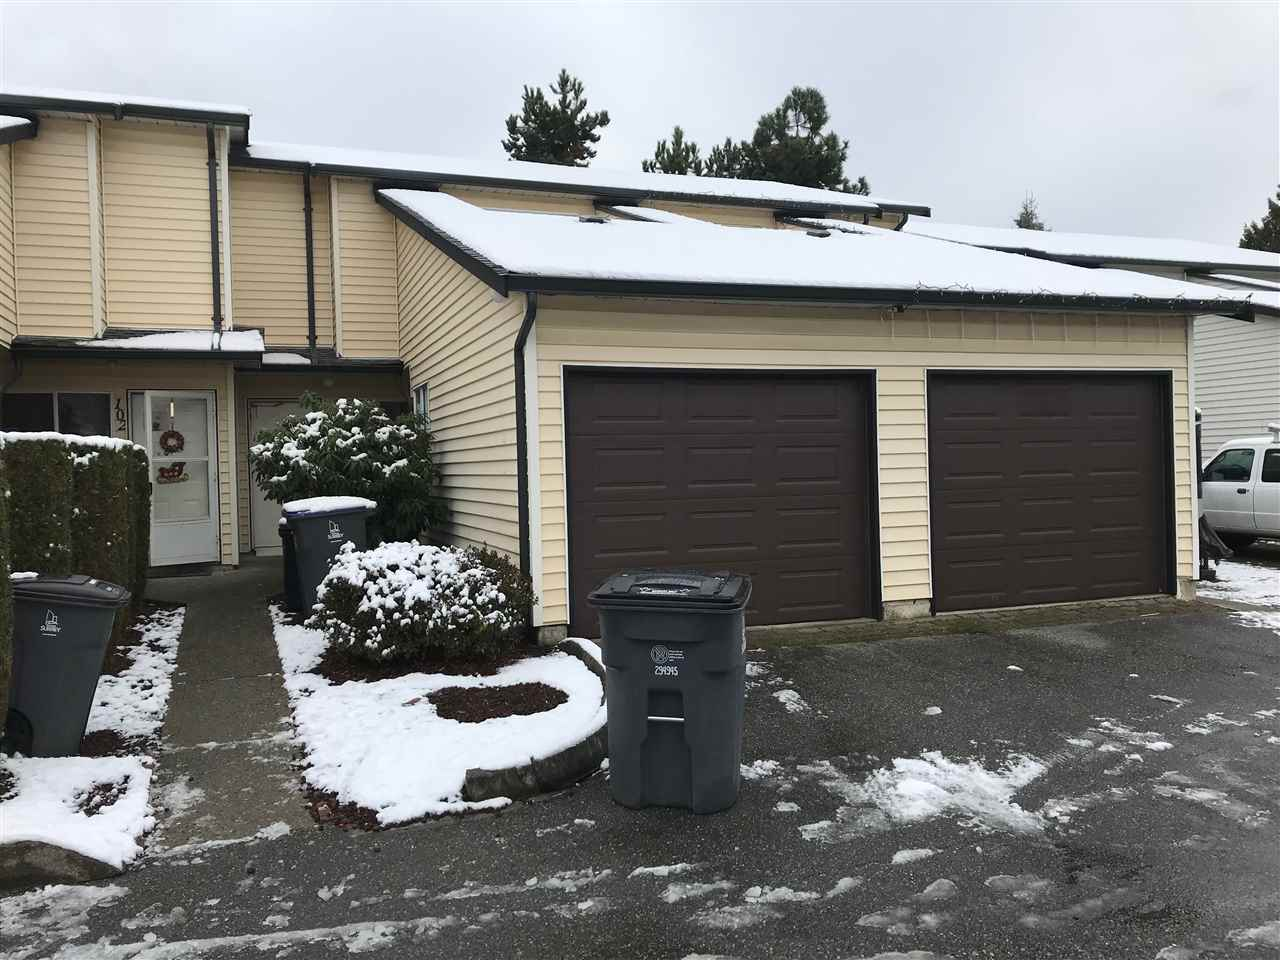 "Main Photo: 103 15519 87A Avenue in Surrey: Fleetwood Tynehead Townhouse for sale in ""Evergreen Estates"" : MLS® # R2229376"